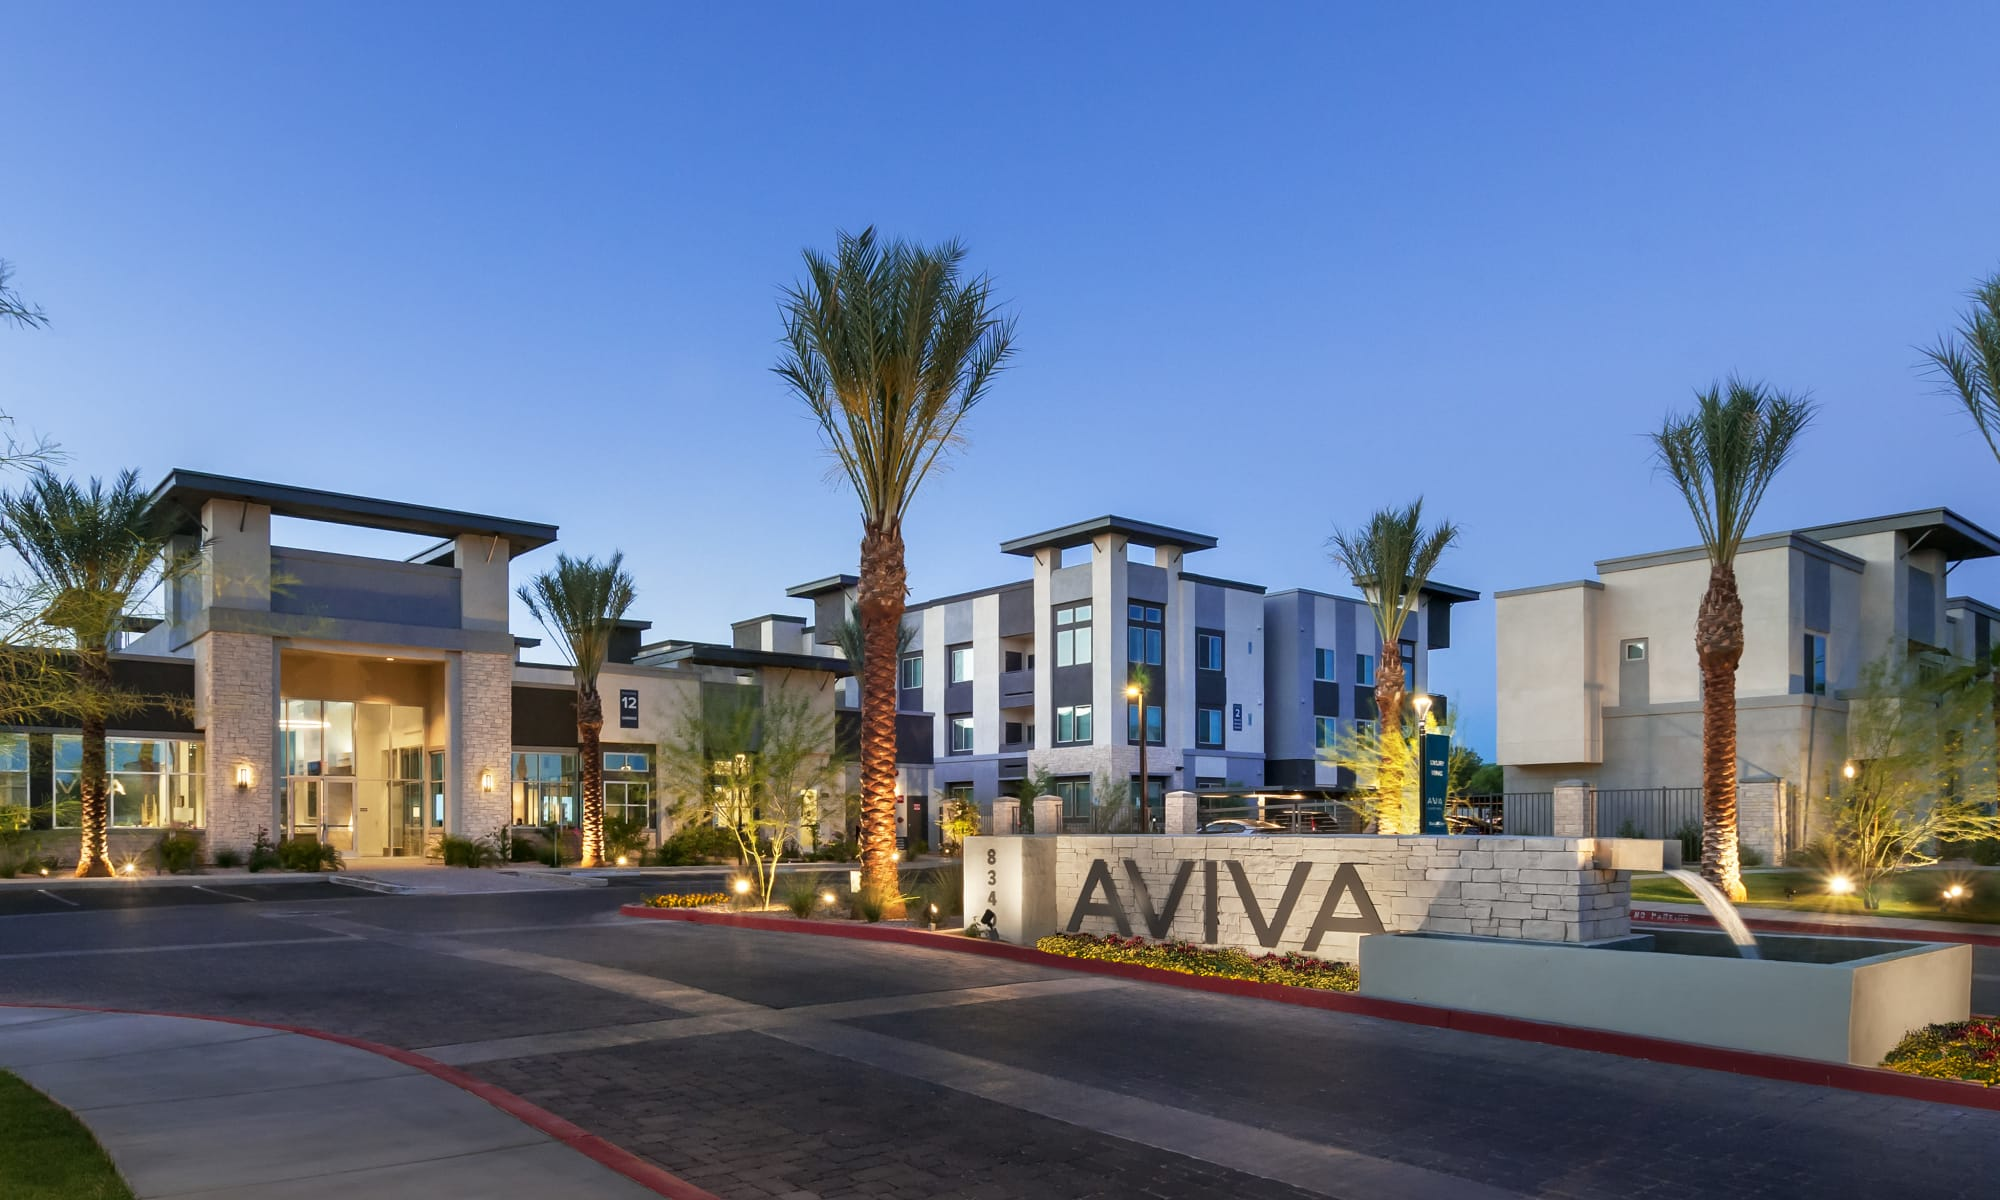 Apartments at Aviva in Mesa, Arizona